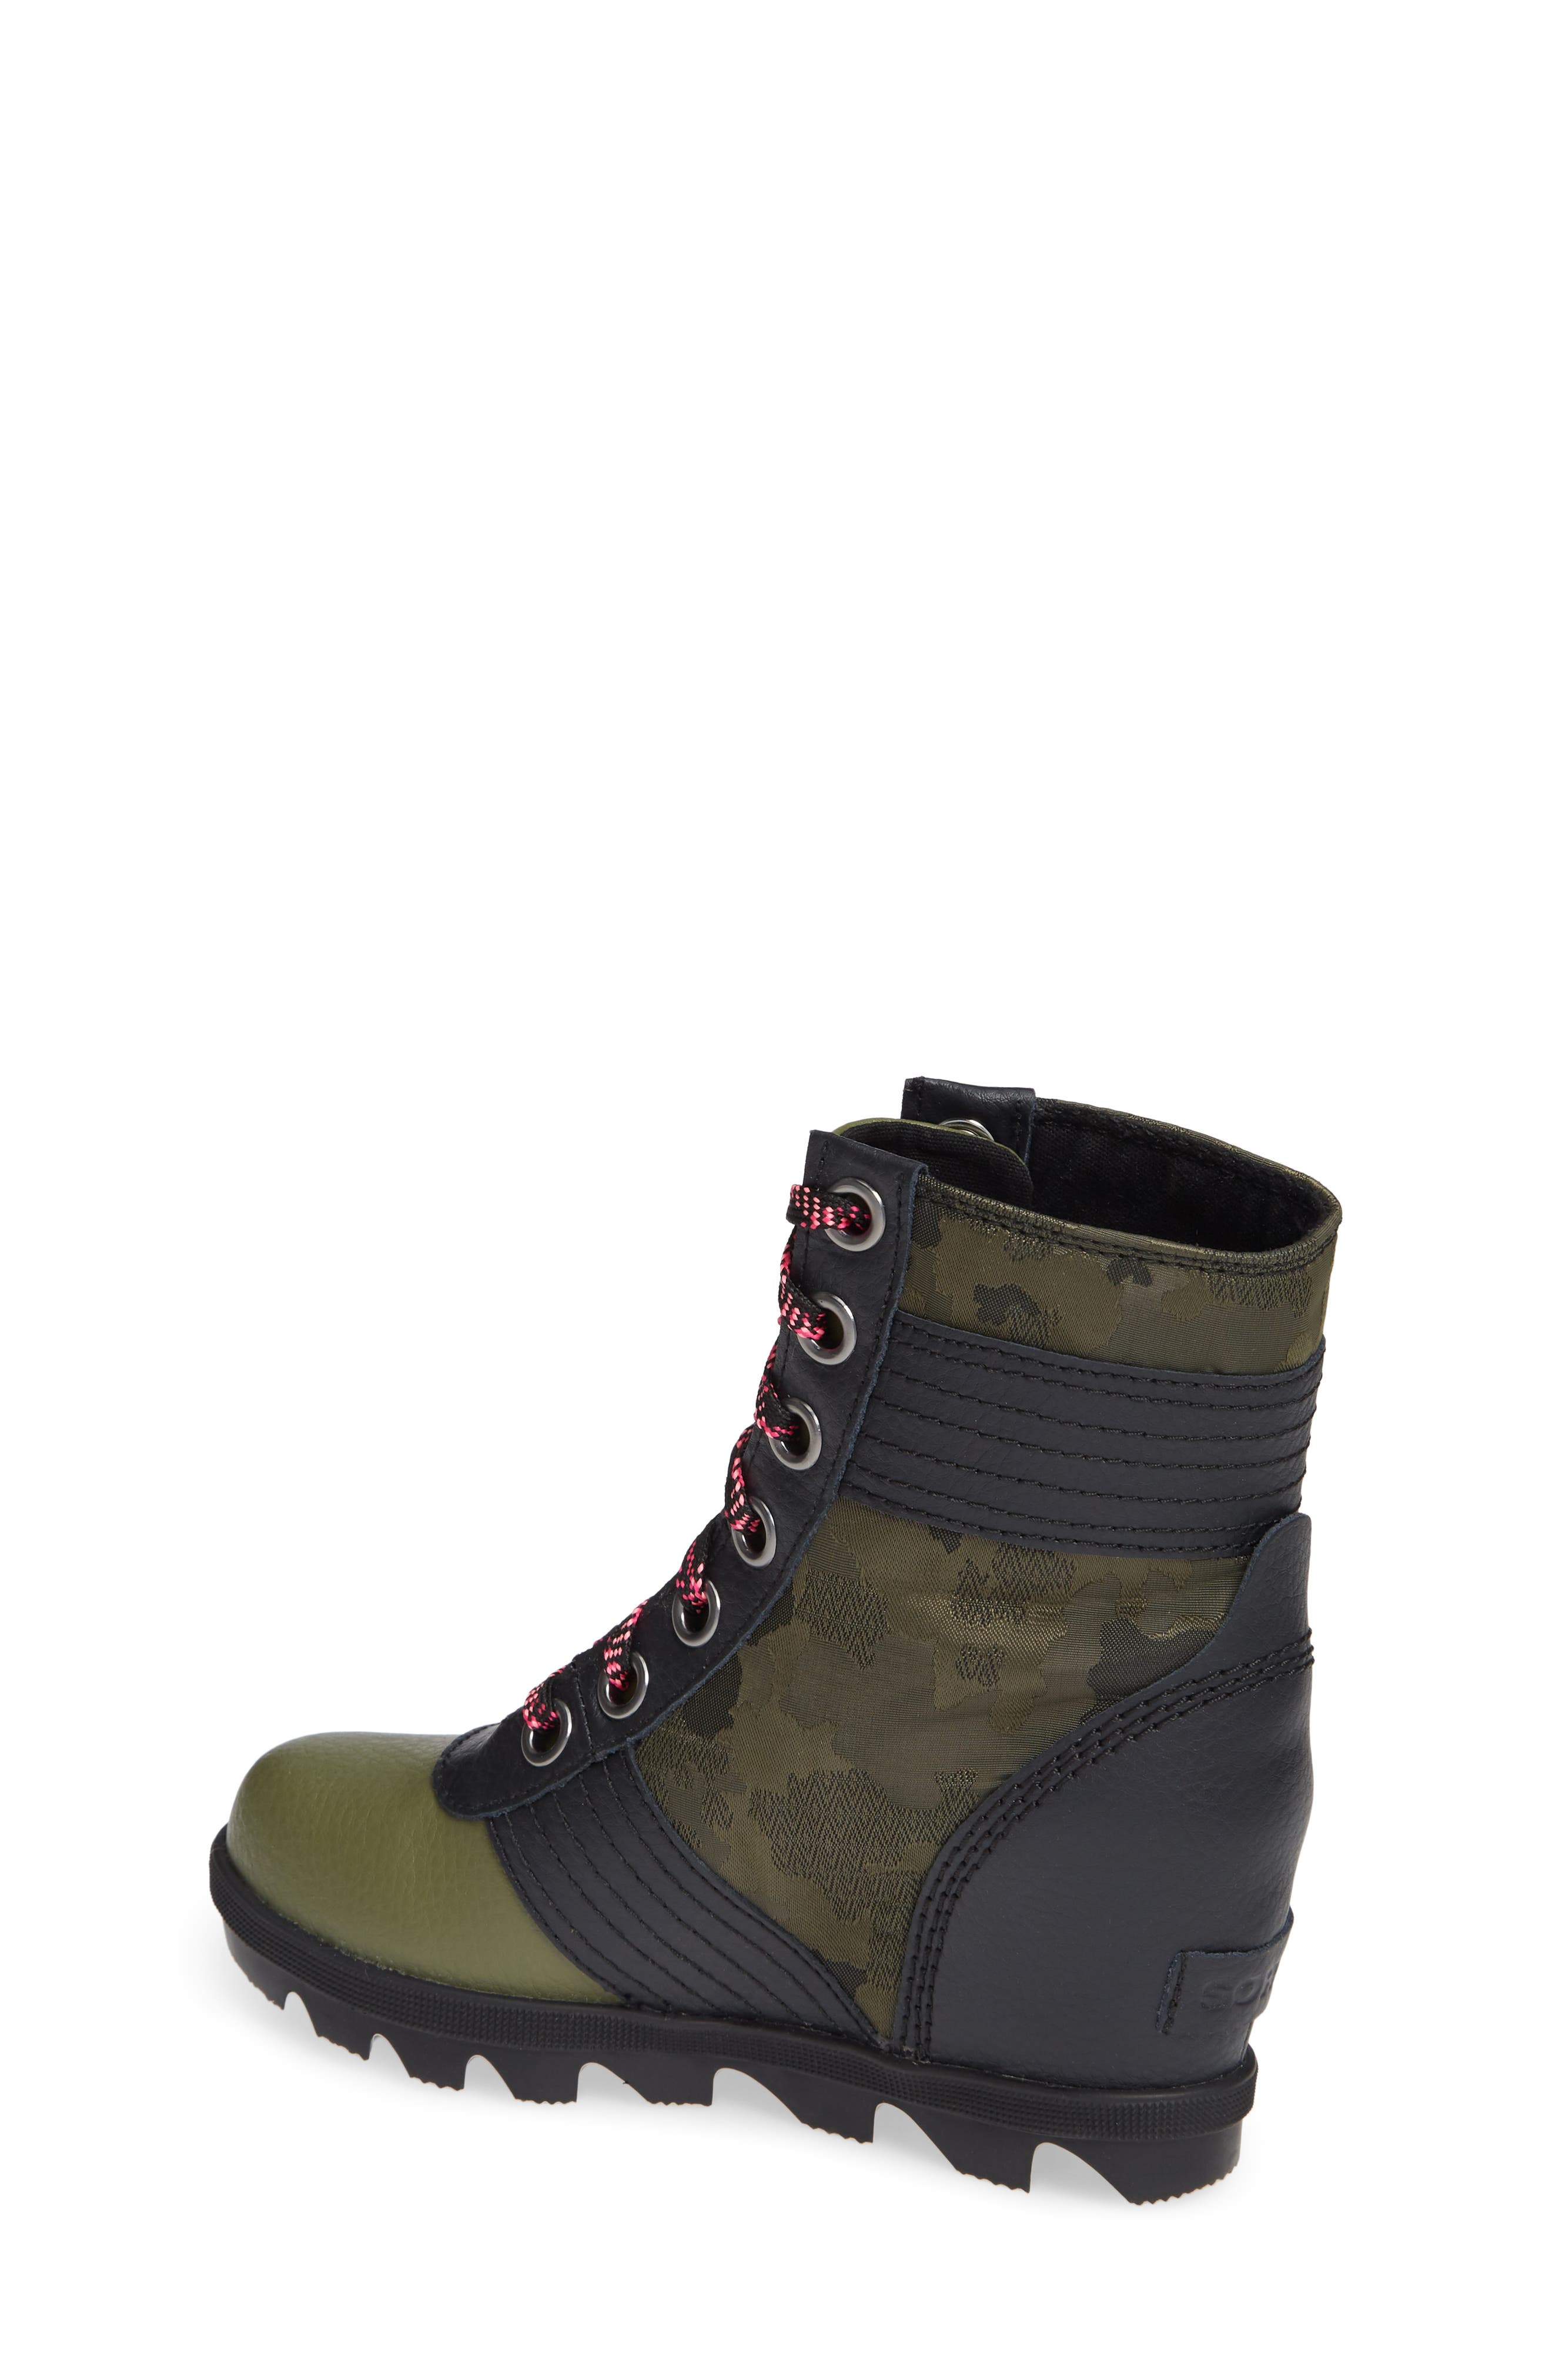 Lexie Waterproof Wedge Bootie,                             Alternate thumbnail 2, color,                             HIKER GREEN/ BLACK